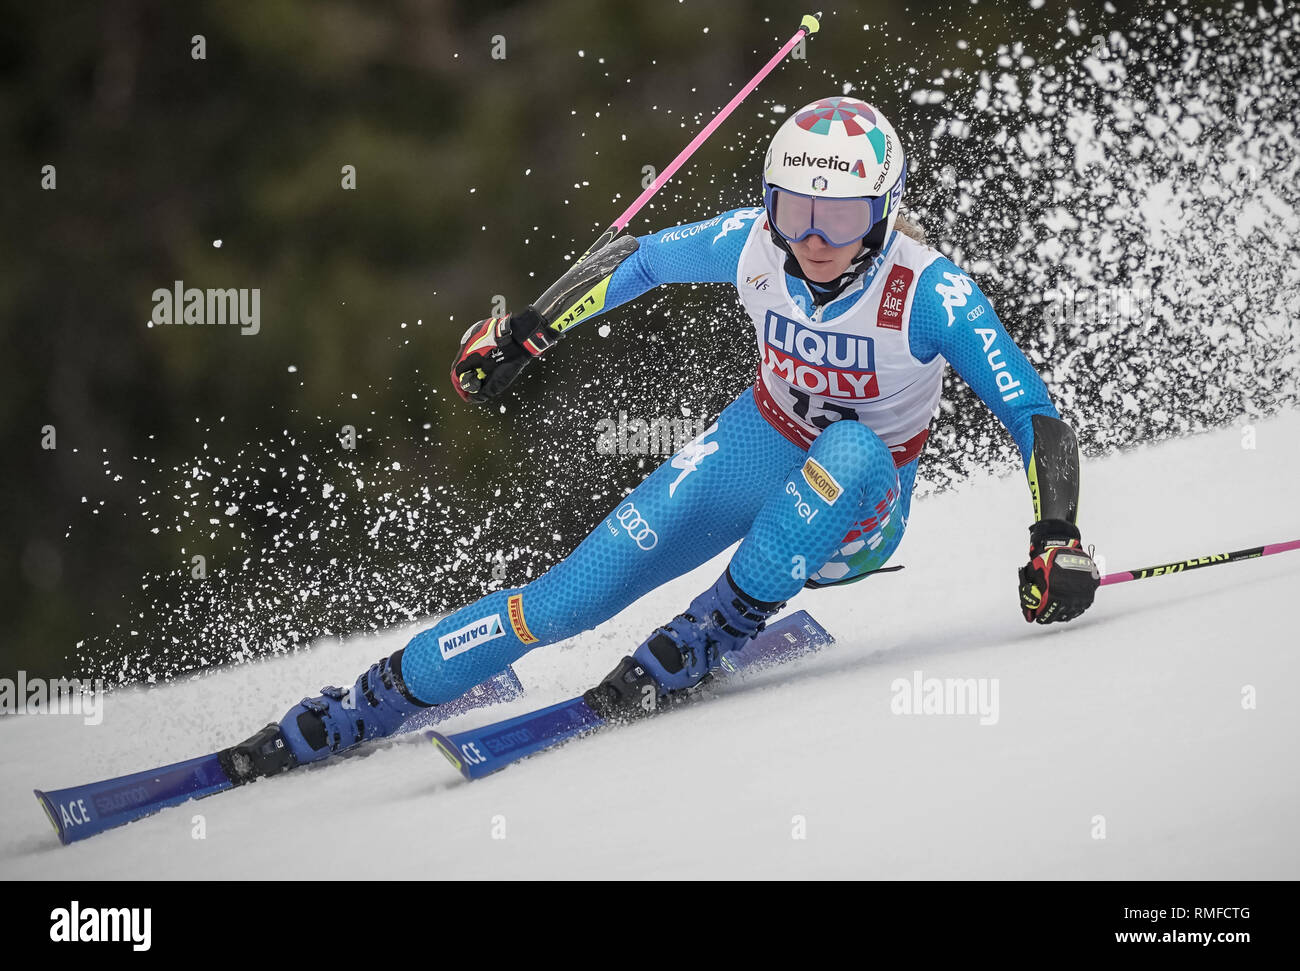 Are Sweden 14th Feb 2019 Alpine Skiing World Championship Giant Slalom Ladies 1st Round Marta Bassino From Italy On The Racetrack Credit Michael Kappeler Dpa Alamy Live News Stock Photo Alamy